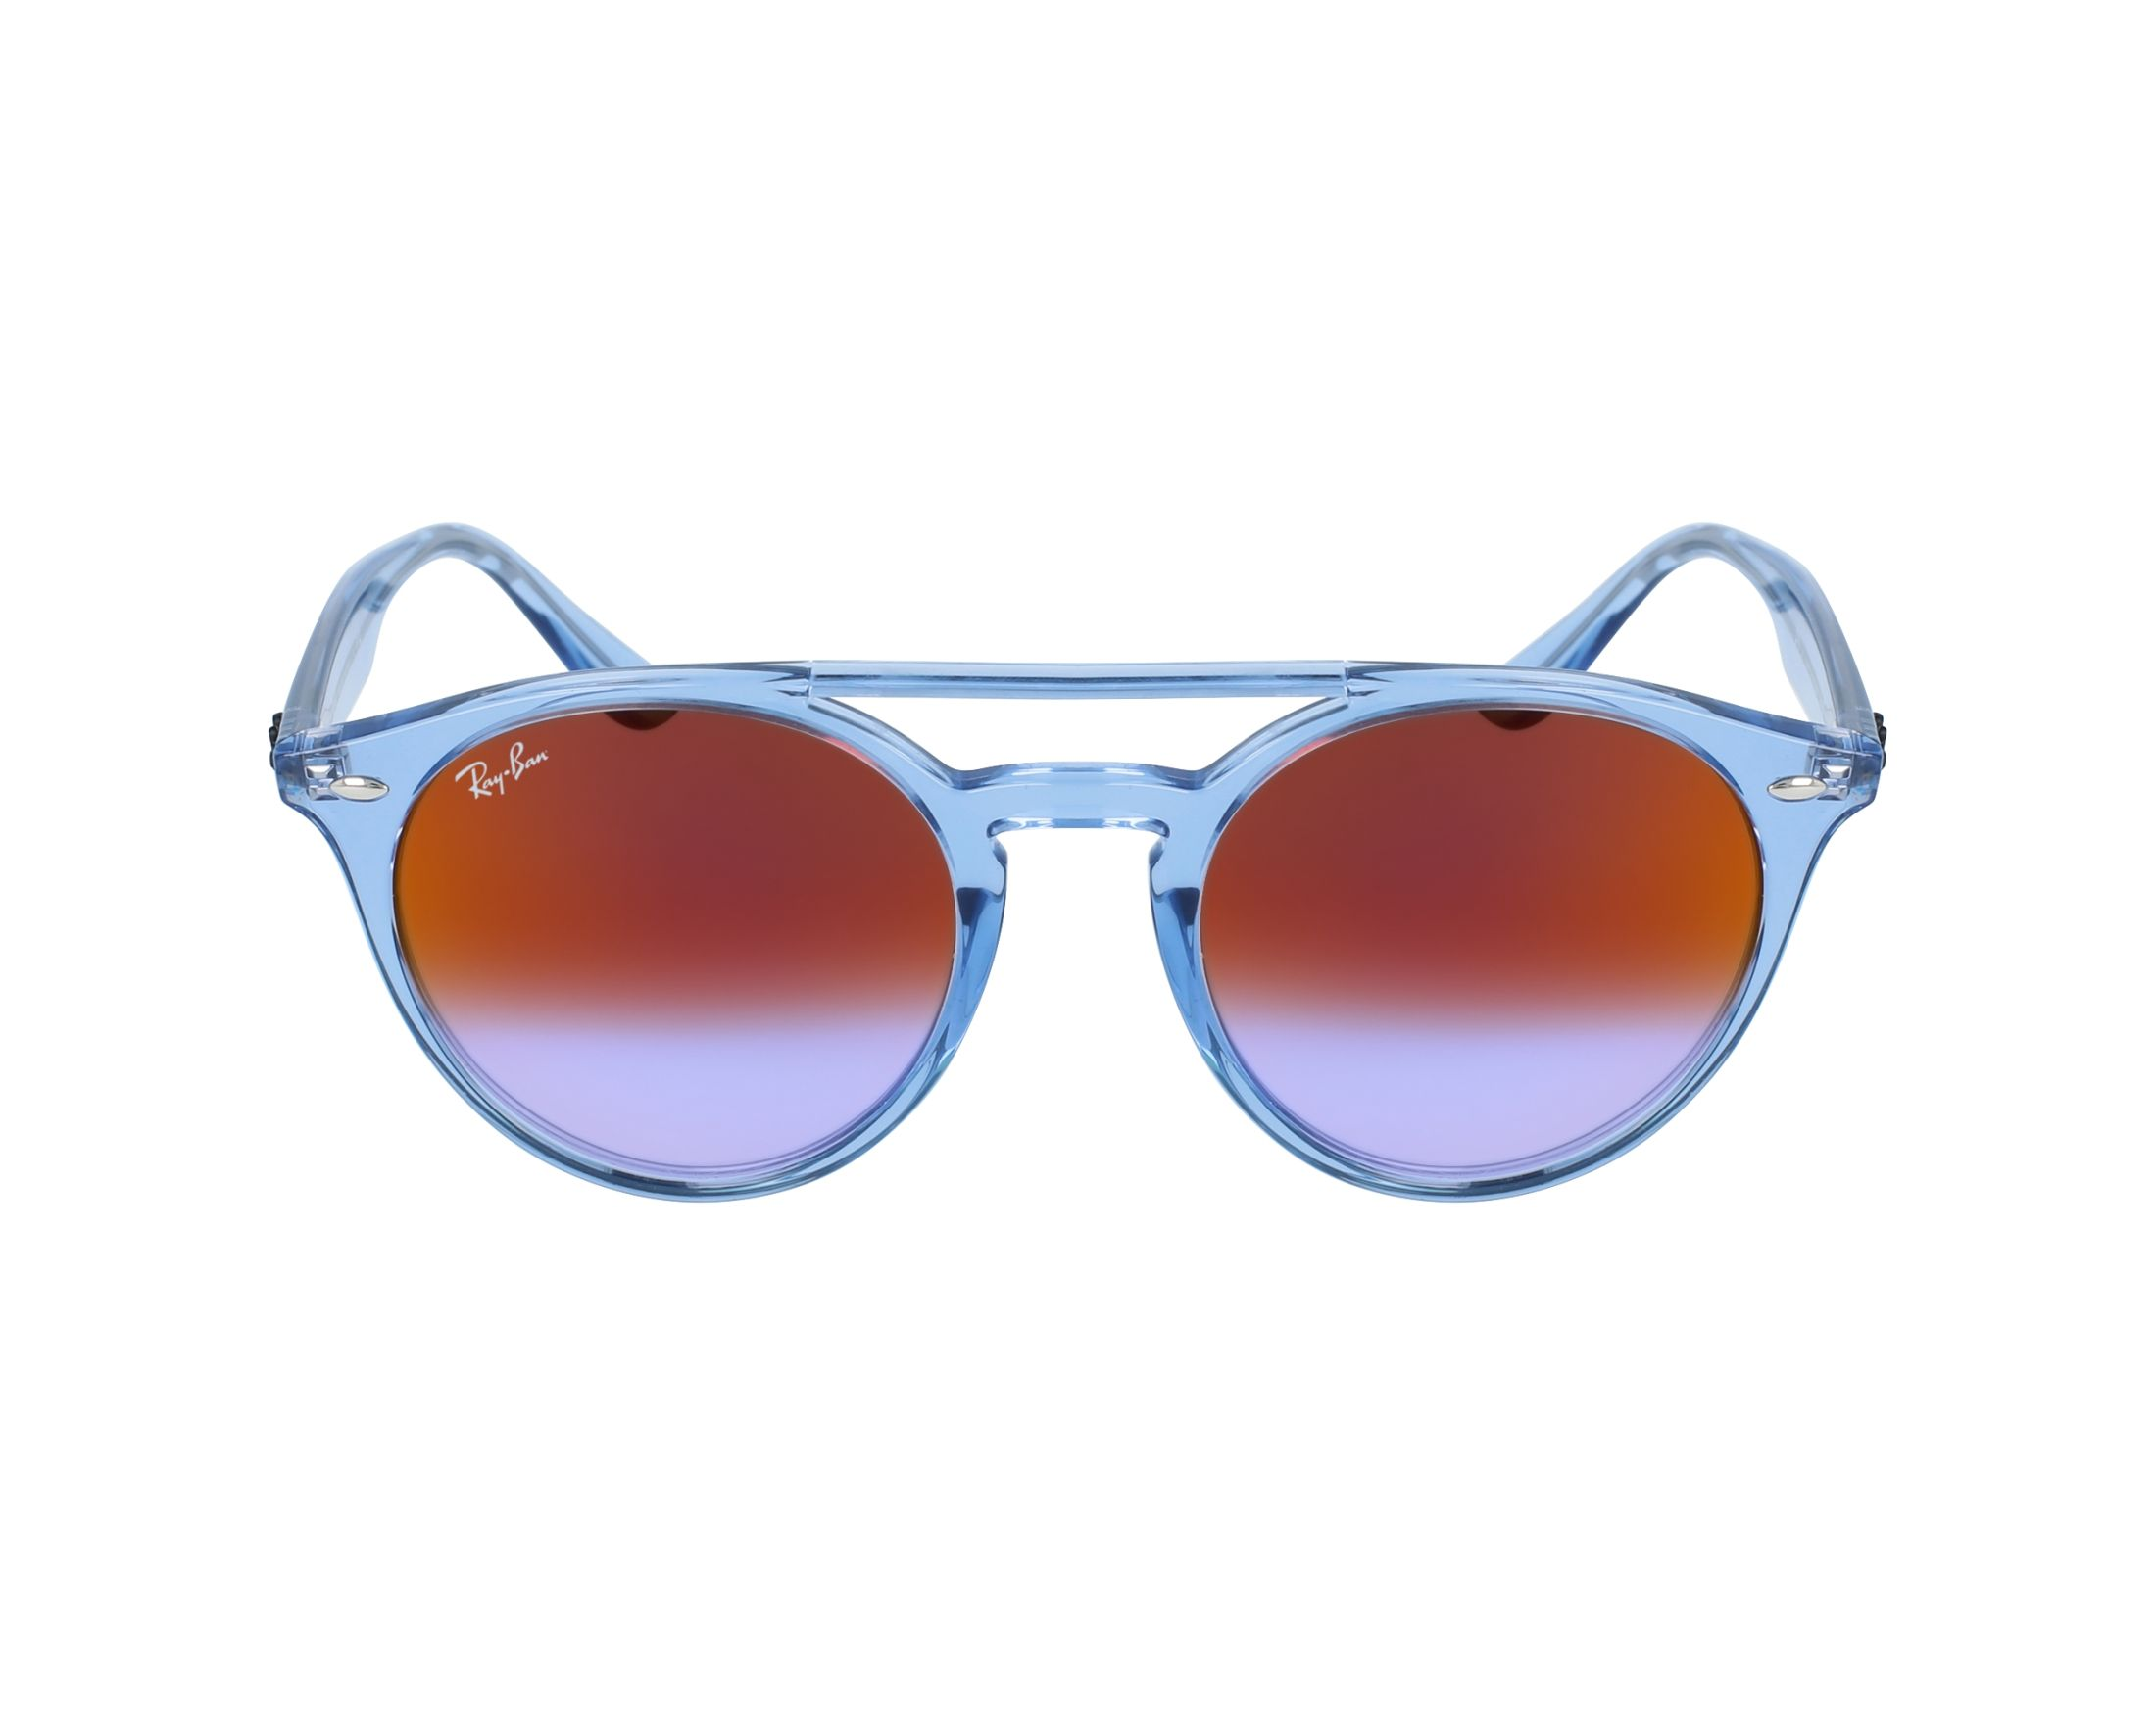 196a68c544 Sunglasses Ray-Ban RB-4279 6278A9 51-21 Blue profile view